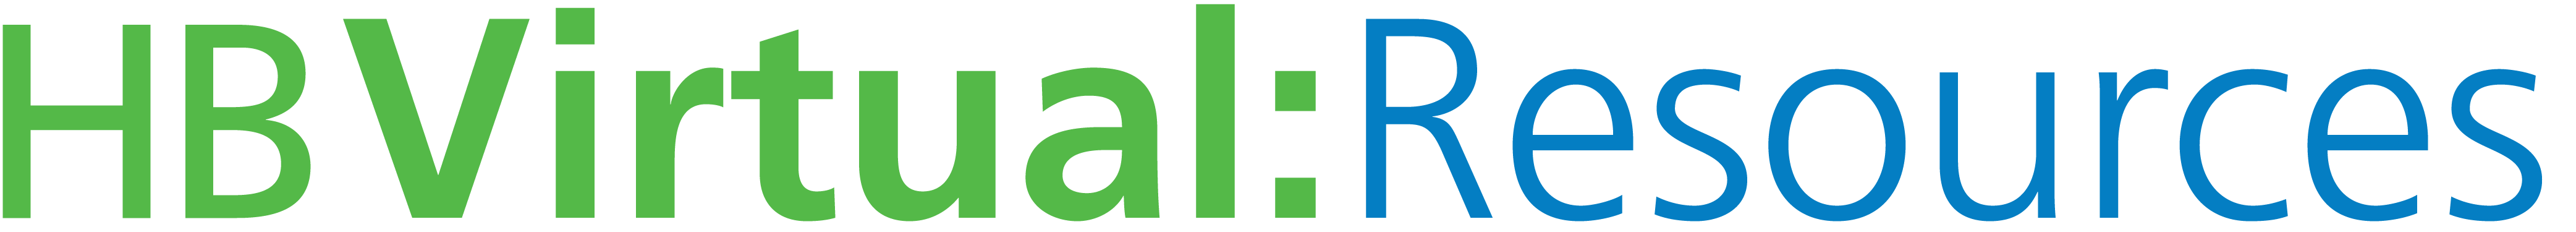 HB Virtual Resources logo